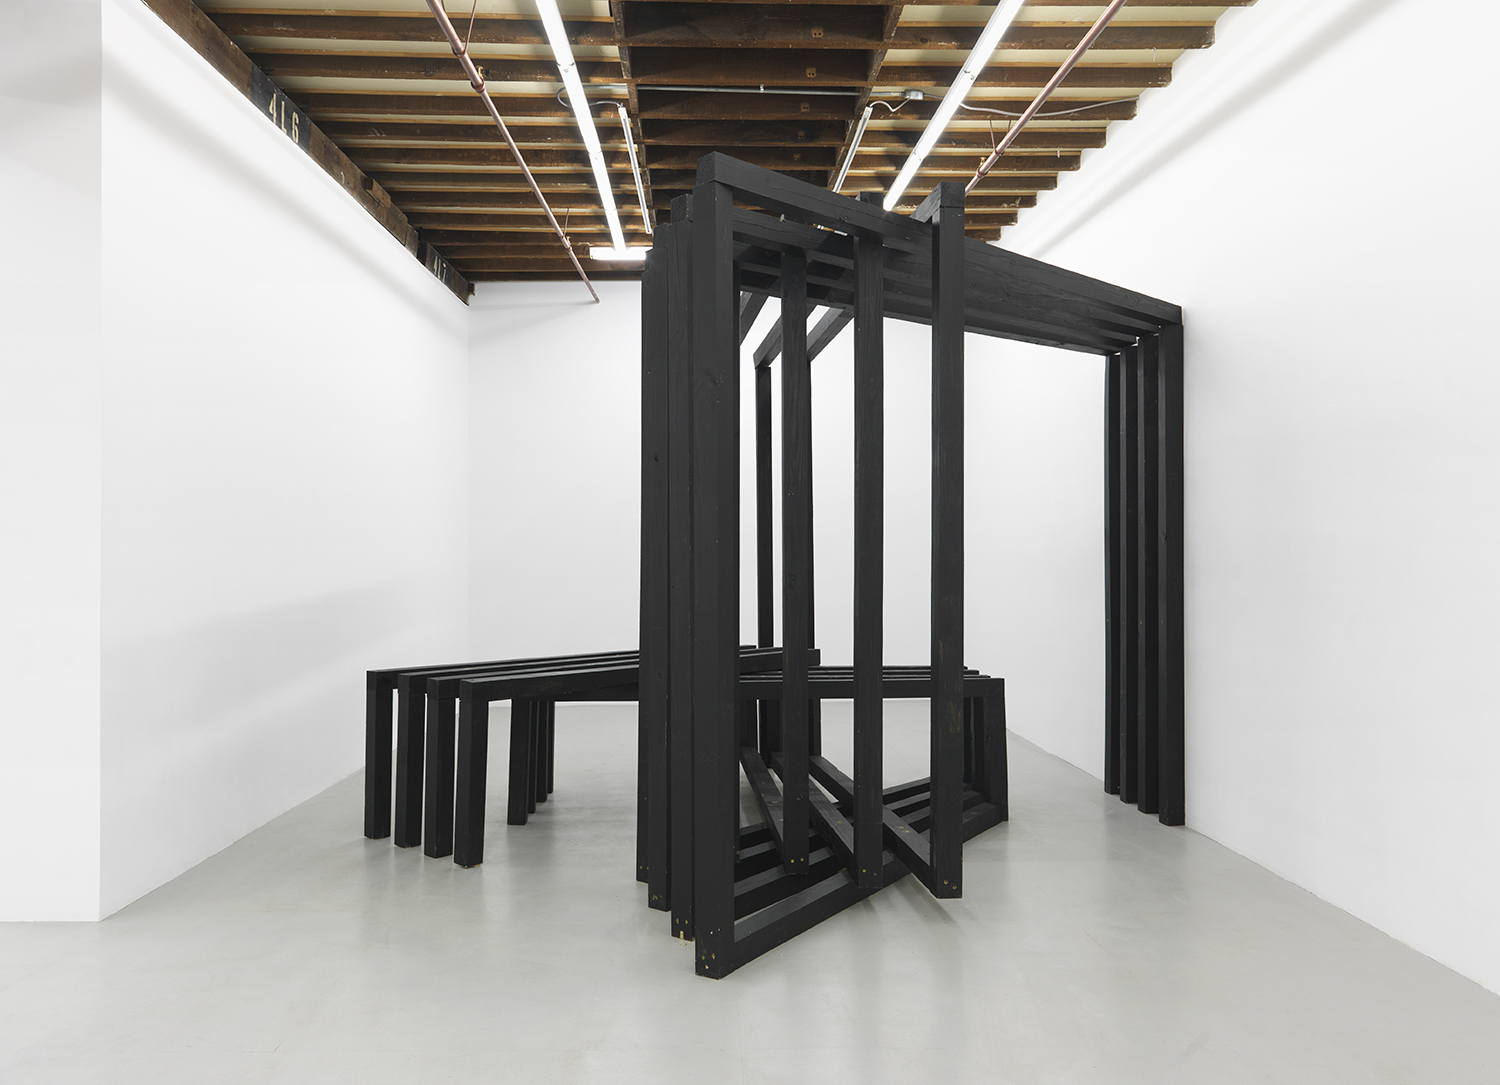 Four Vault,  2015 Pressure treated timber, chalk paint, and fragments used in live event 104 x 164 x 164 inches